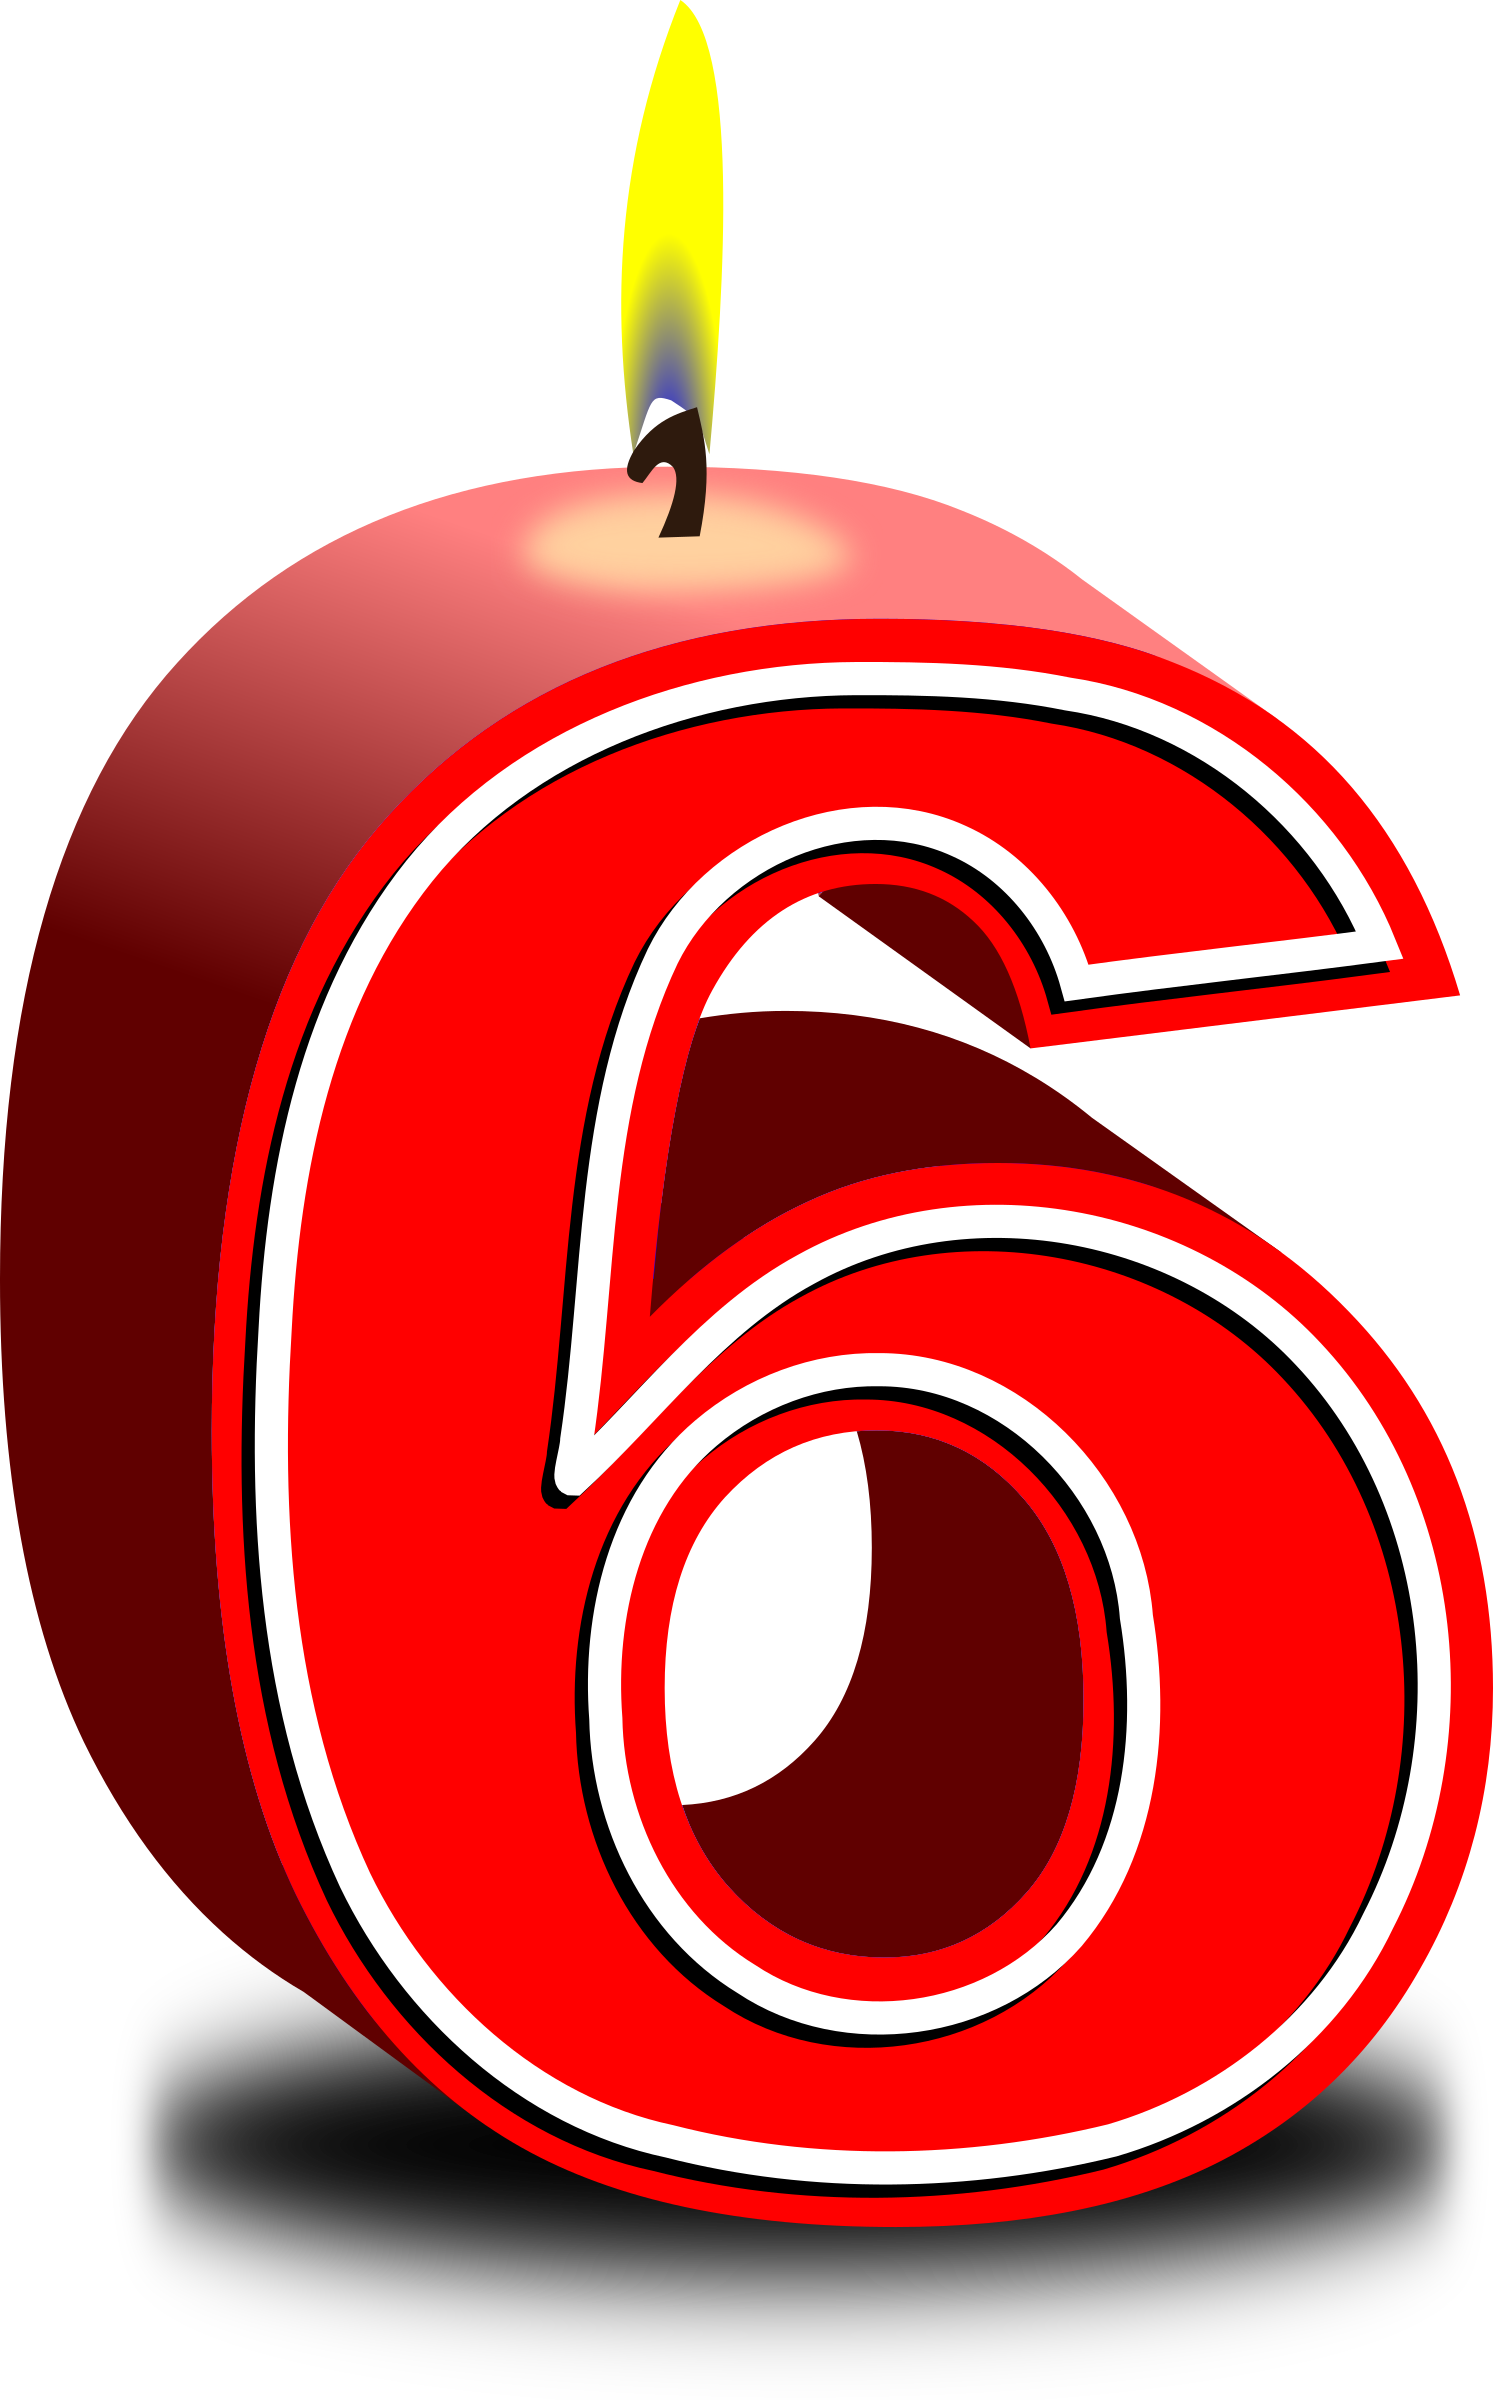 Birthday candle big image. Number 6 clipart free christmas number